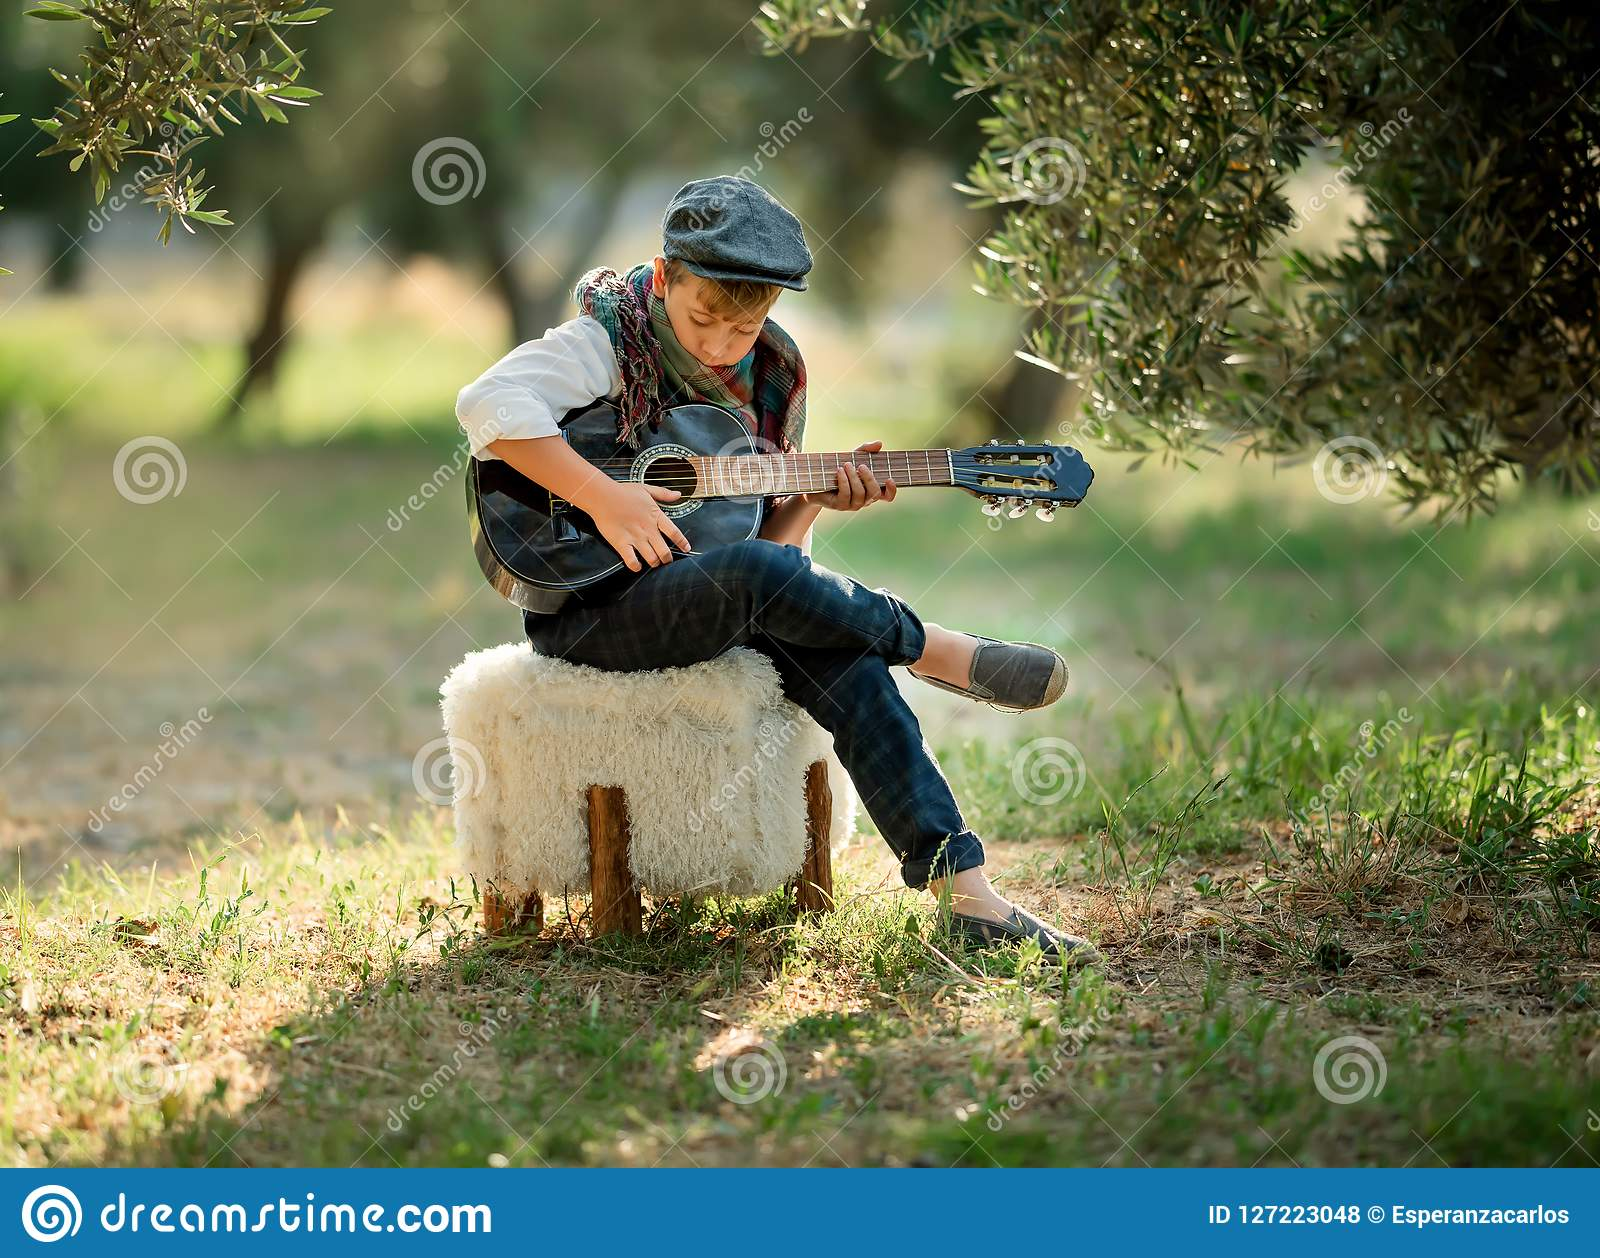 Cute little boy is playing guitar in the park